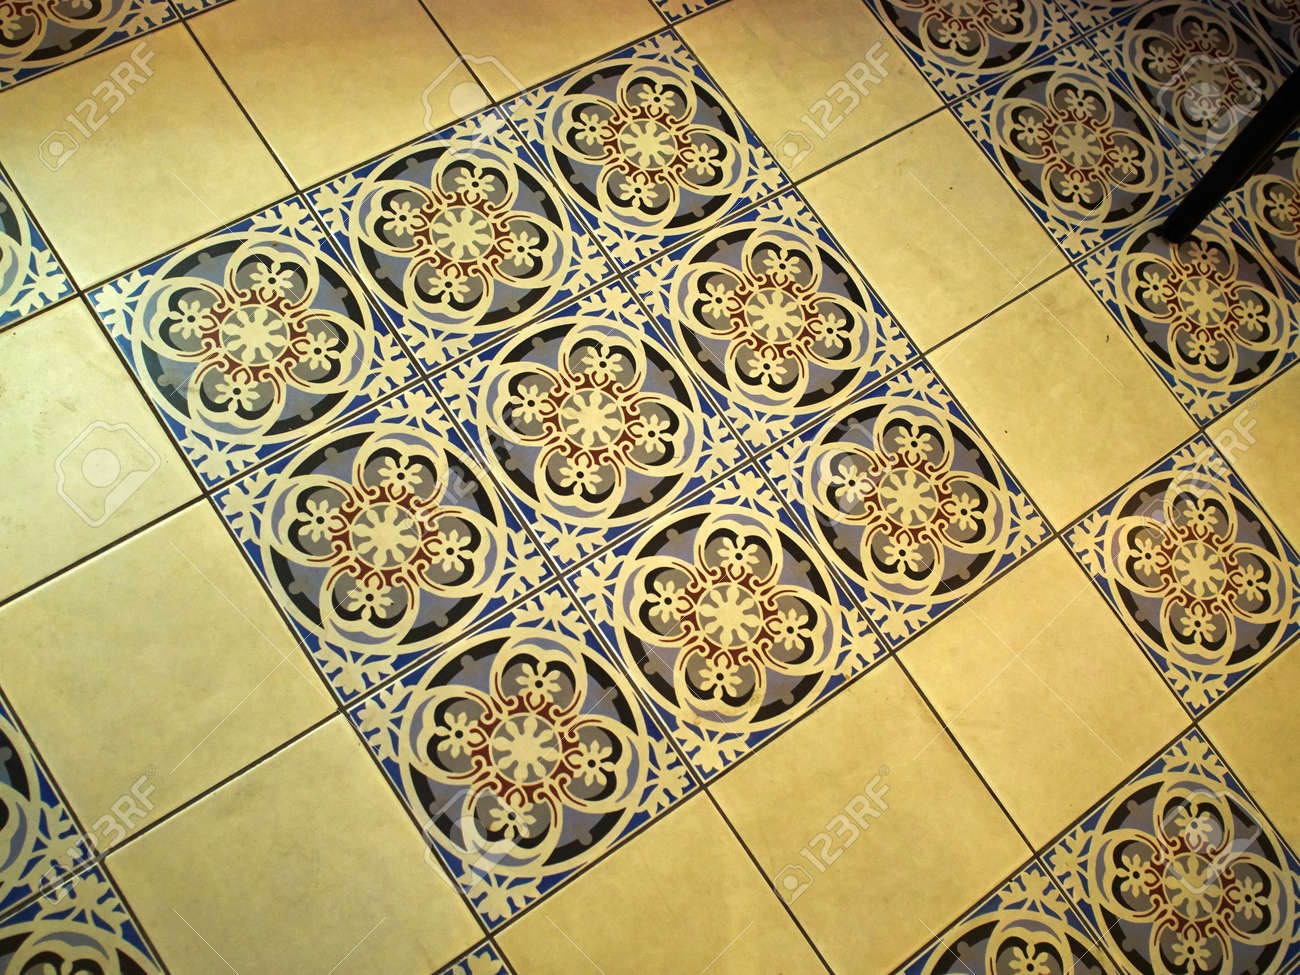 Moroccan style floor tiles image collections tile flooring moroccan floor tiles choice image tile flooring design ideas traditional floor tiles choice image tile flooring dailygadgetfo Image collections